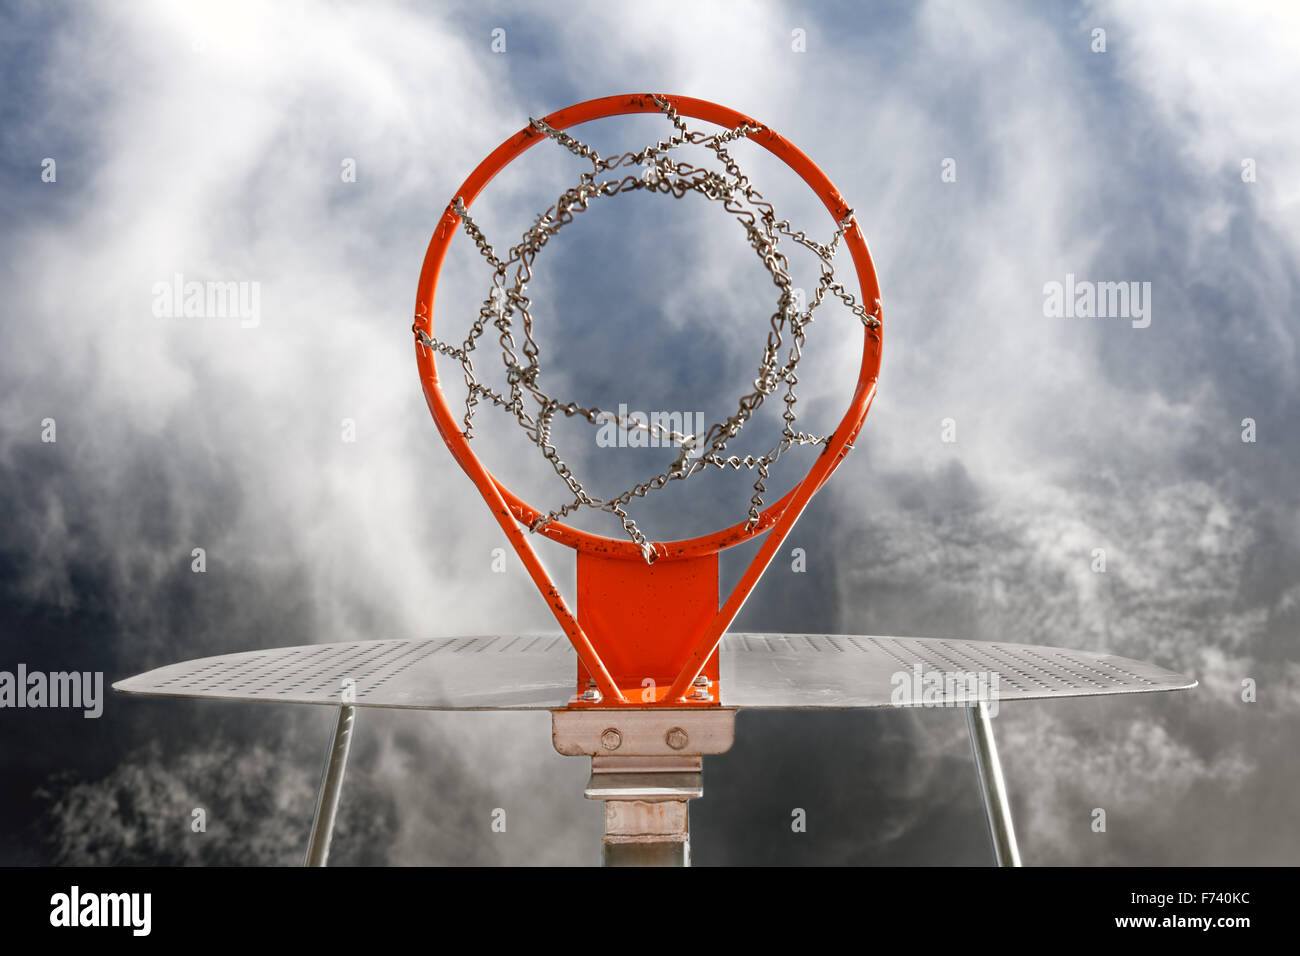 Abstract image of basketball goal against the sky - Stock Image